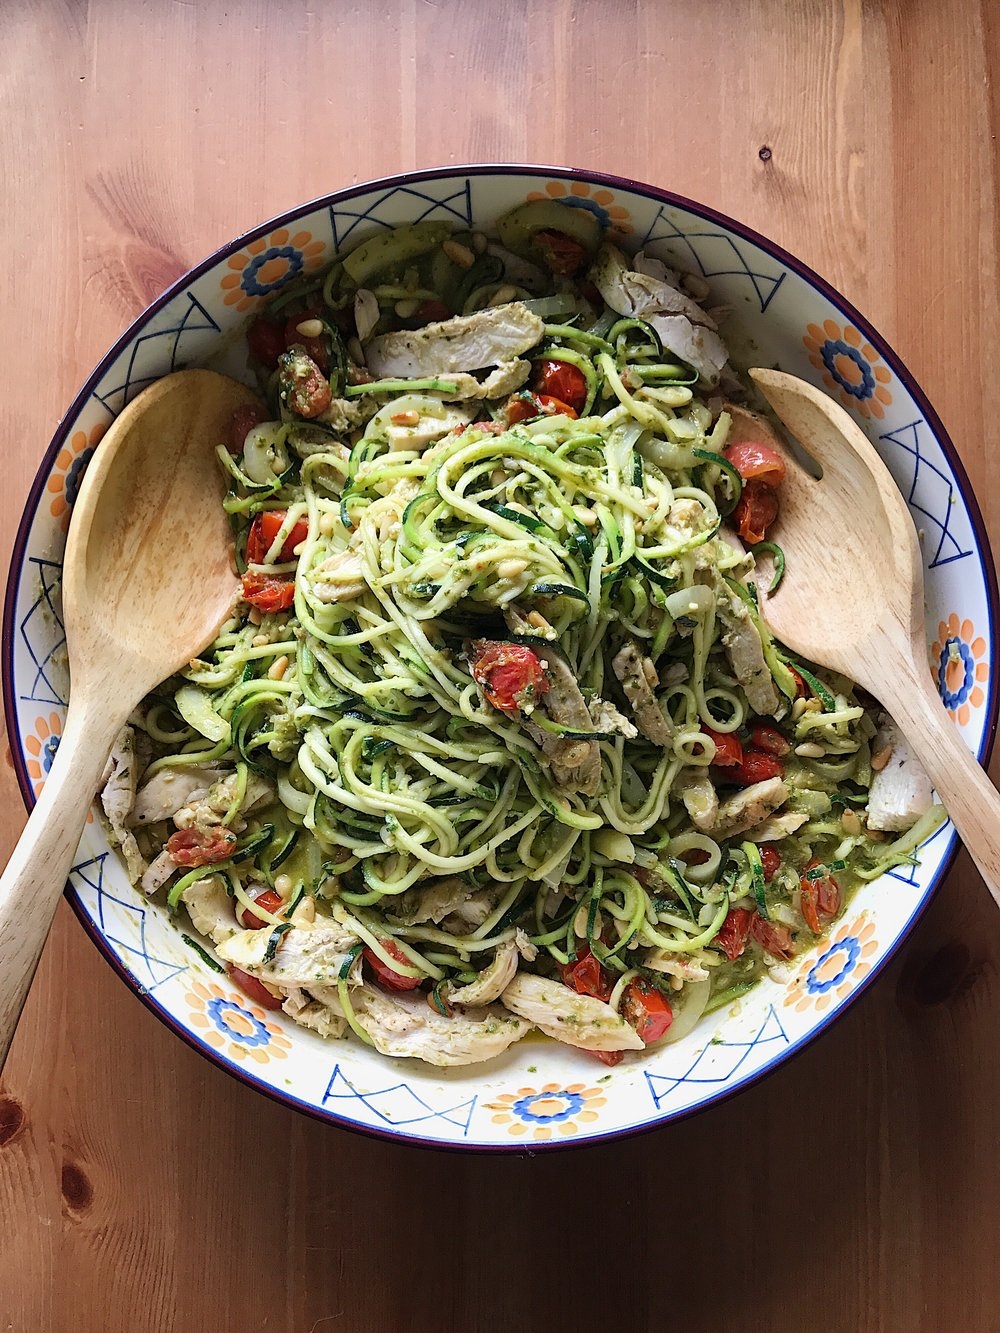 Zoodles have become my new favourite Candida diet-friendly meal. Simply sauté garlic and onions in ghee, throw in some cherry tomatoes, then add pre-cooked organic chicken, spiralized zucchini, toasted pine nuts, lemon juice, and home made pesto (keep on heat until warm).